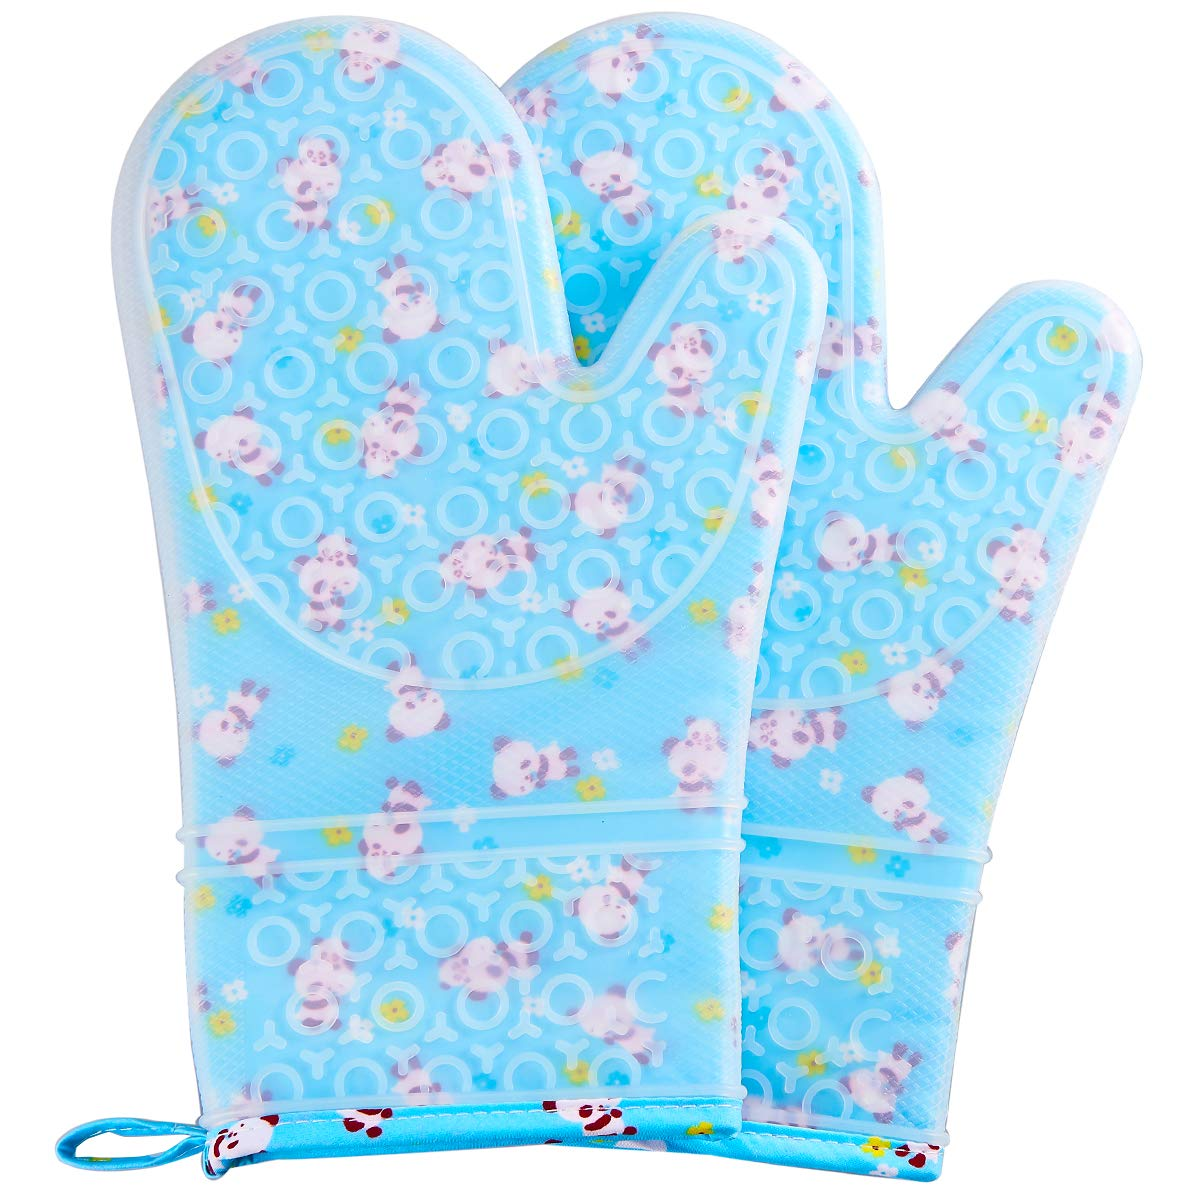 FAVIA Silicone Oven Mitts Heat Resistant to 480℉ Cooking Gloves for Grill BBQ Kitchen - Non-Slip & Waterproof BPA Free 1 Pair - Protective Cotton Lining (Medium, Blue Base with Panda)